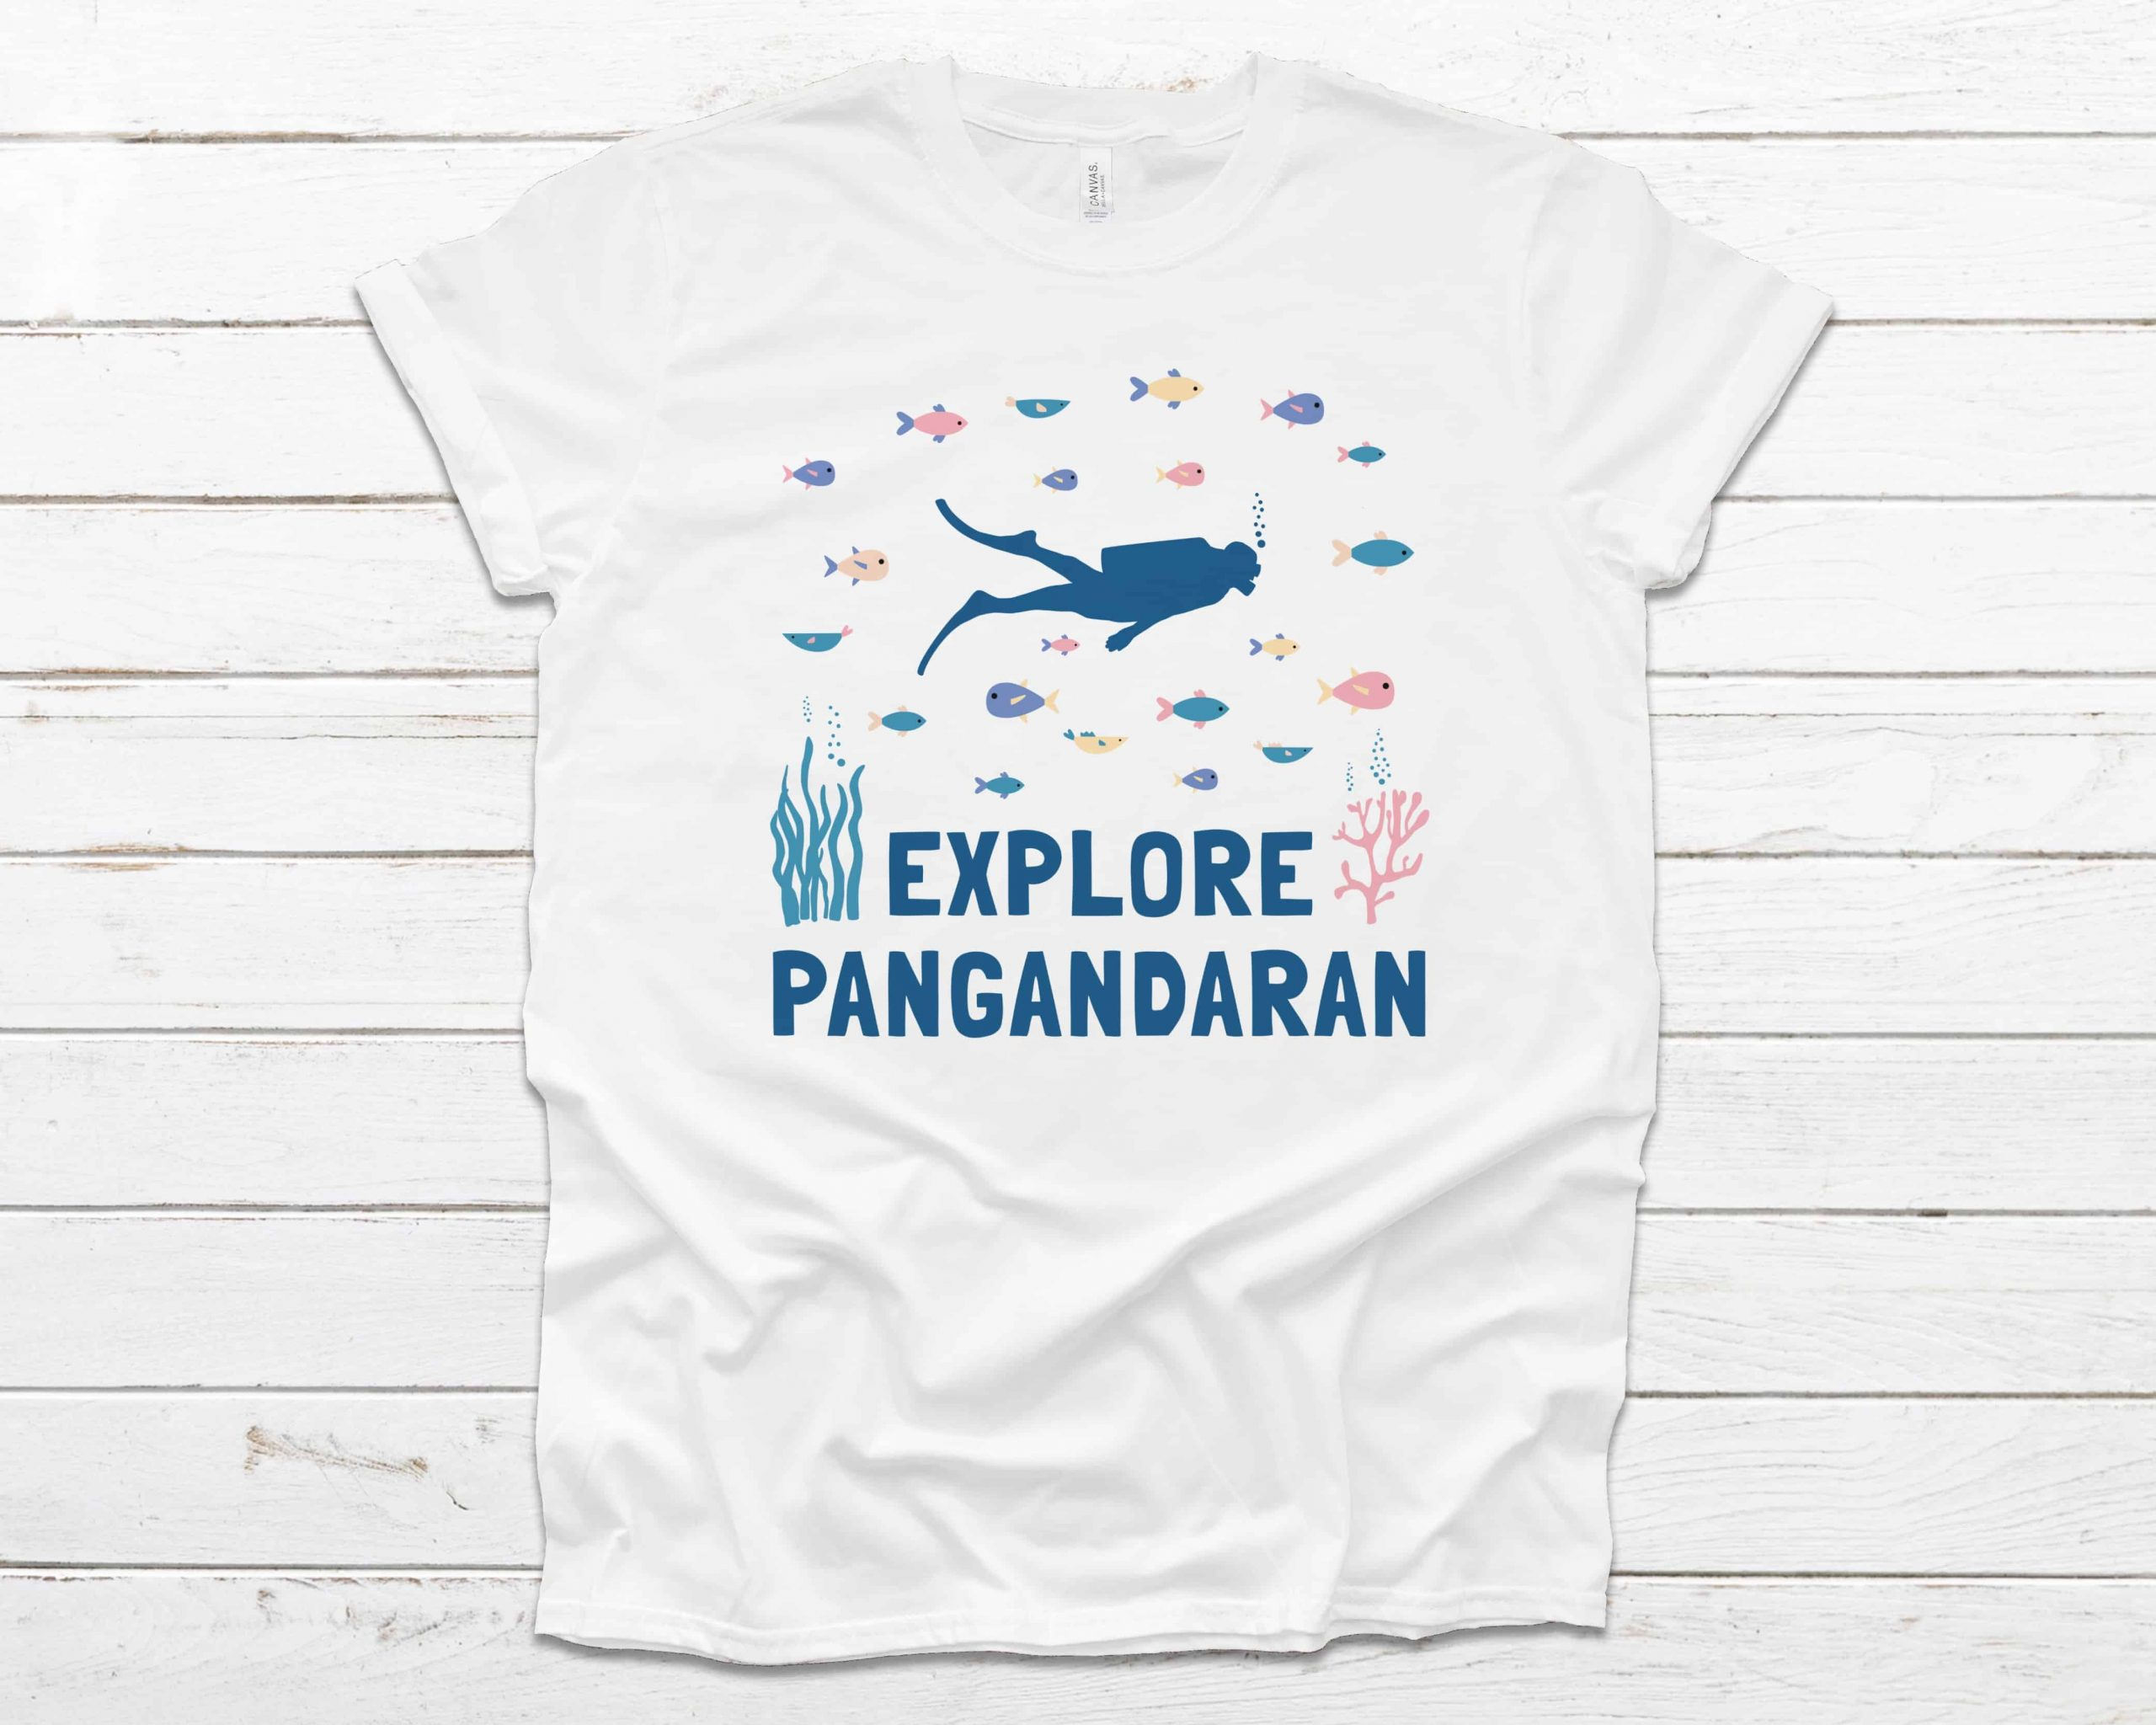 Explore Pangandaran t-shirt white color